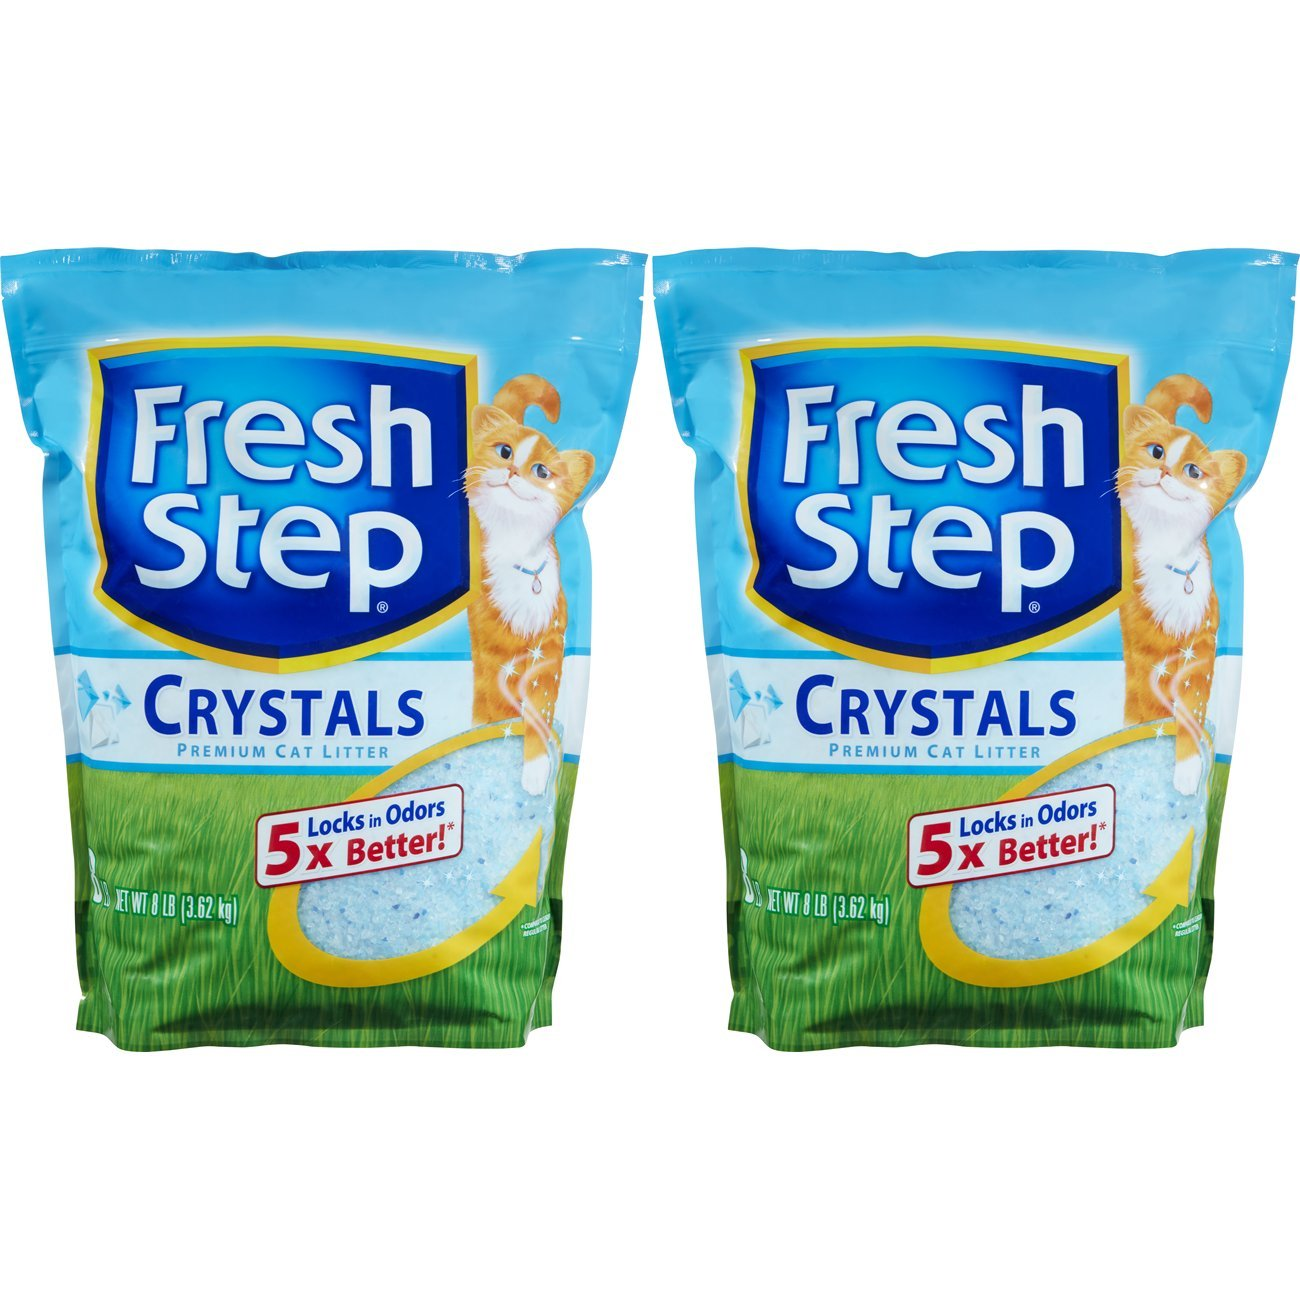 Fresh Step Crystals, Premium Cat Litter, Scented, 8 Pounds (Pack of 2)